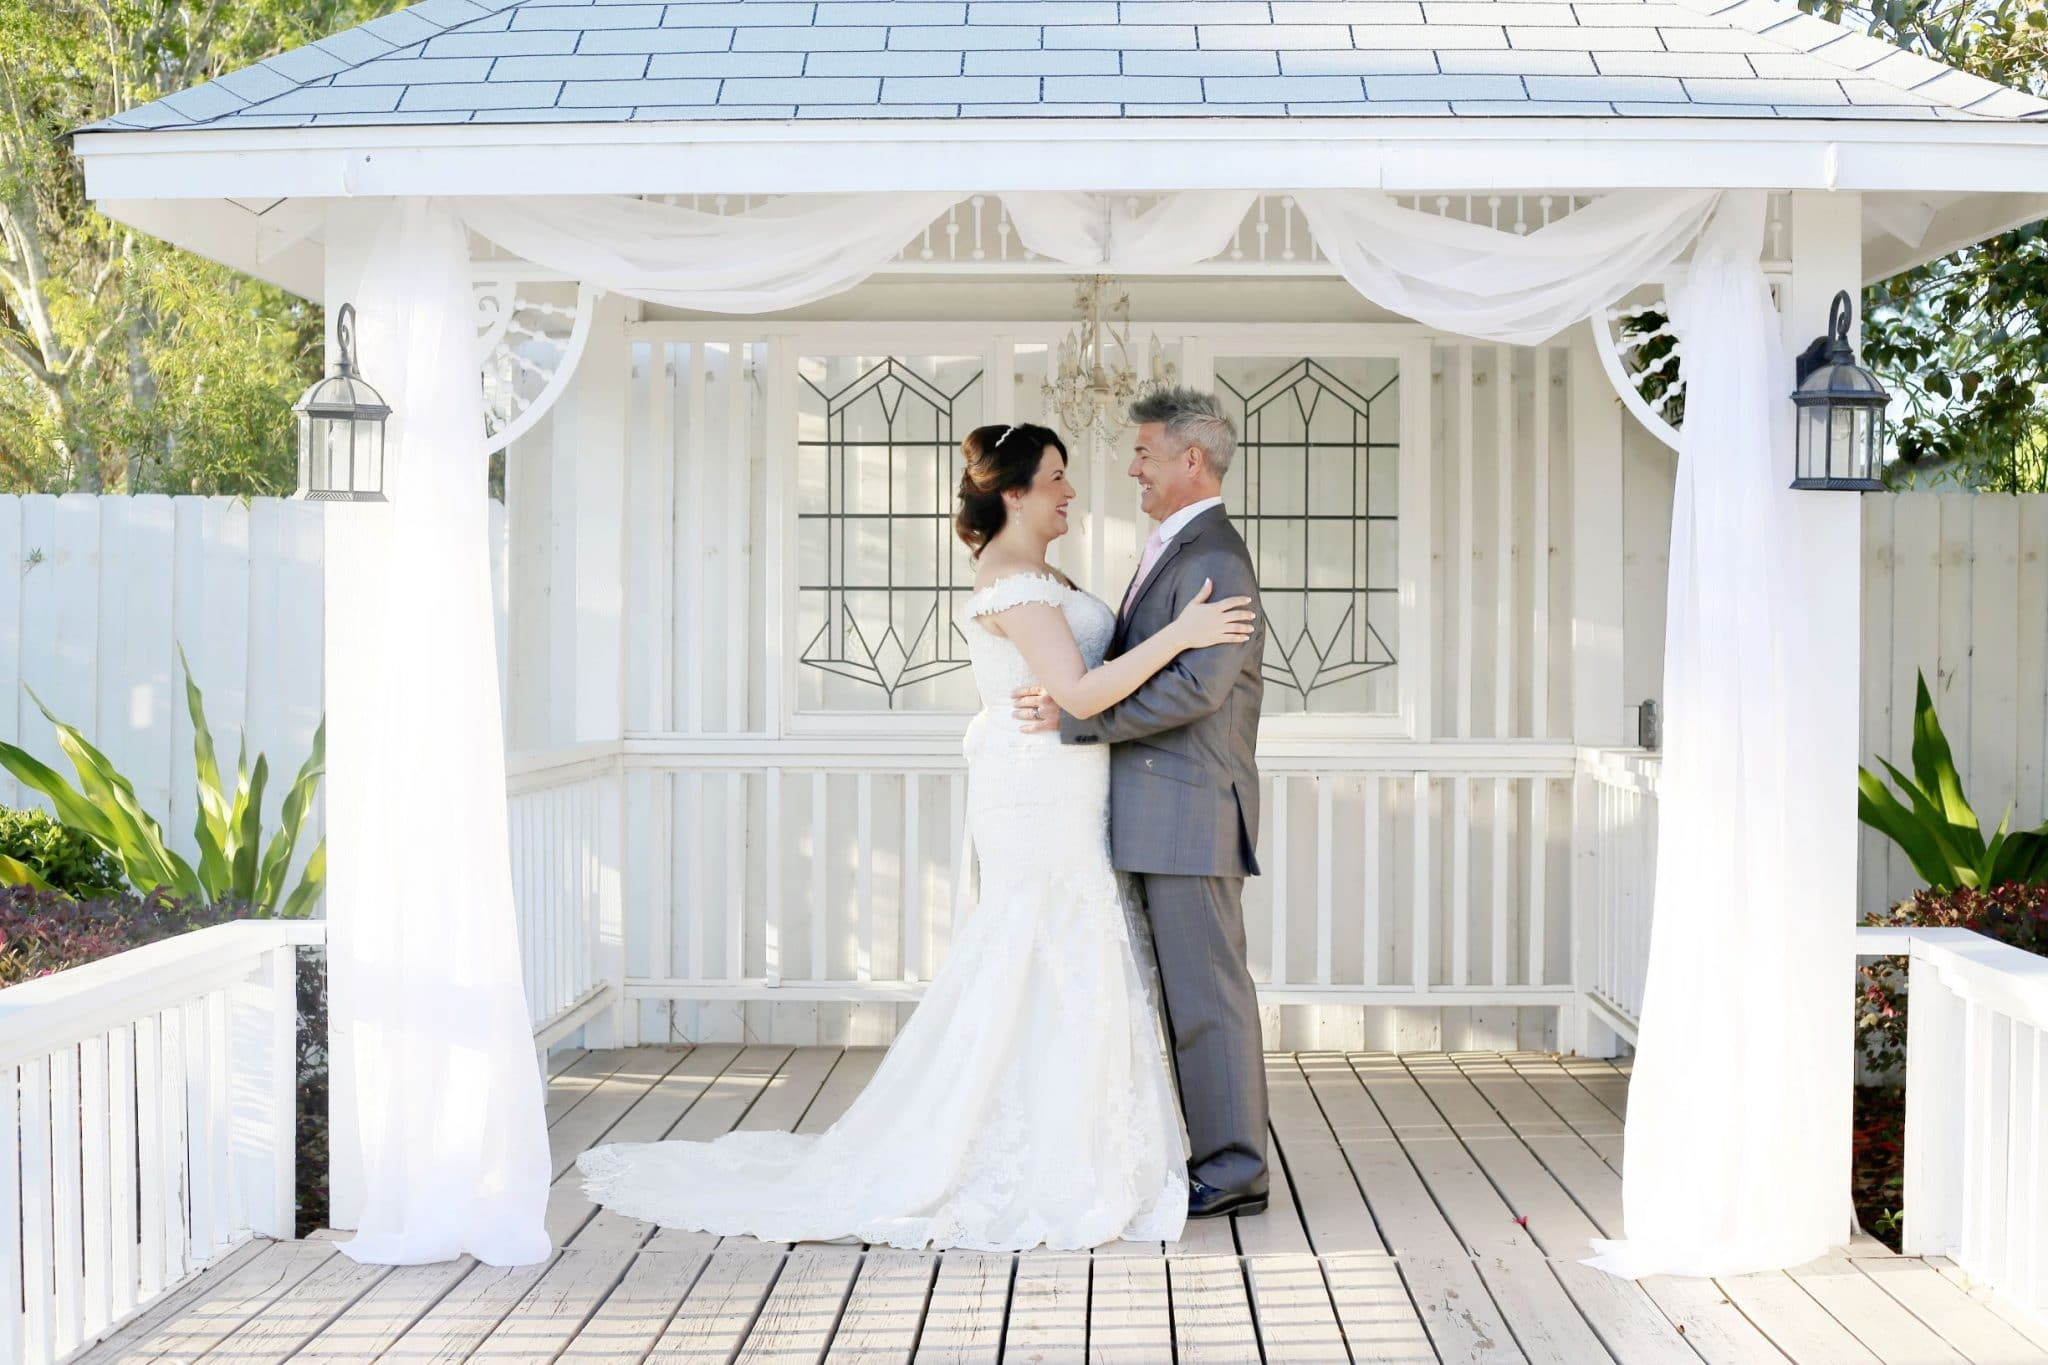 Celebration Gardens- bride and groom under white porch